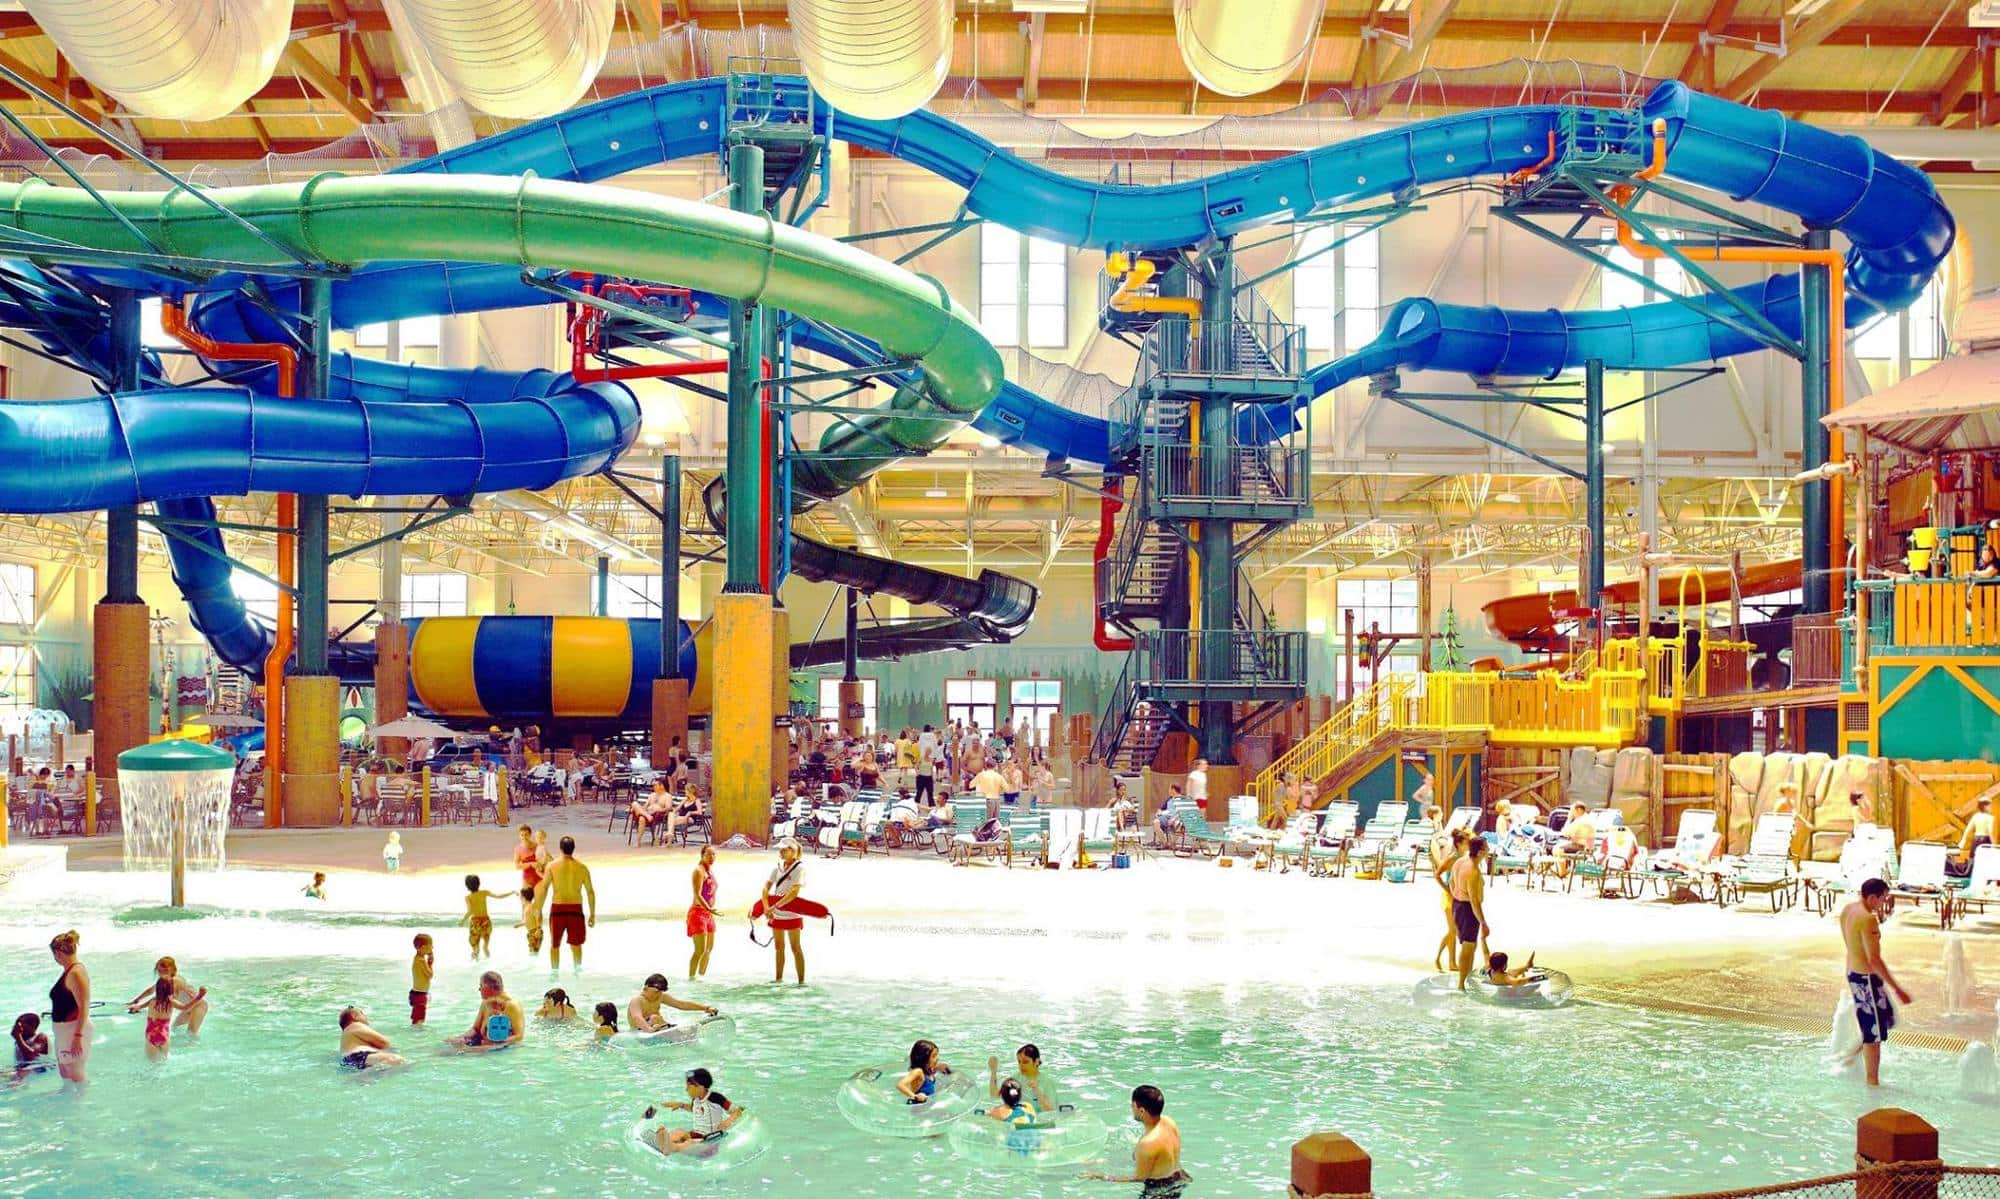 There's plenty for families to enjoy at the Great Wolf Lodge in Wisconsin Dells